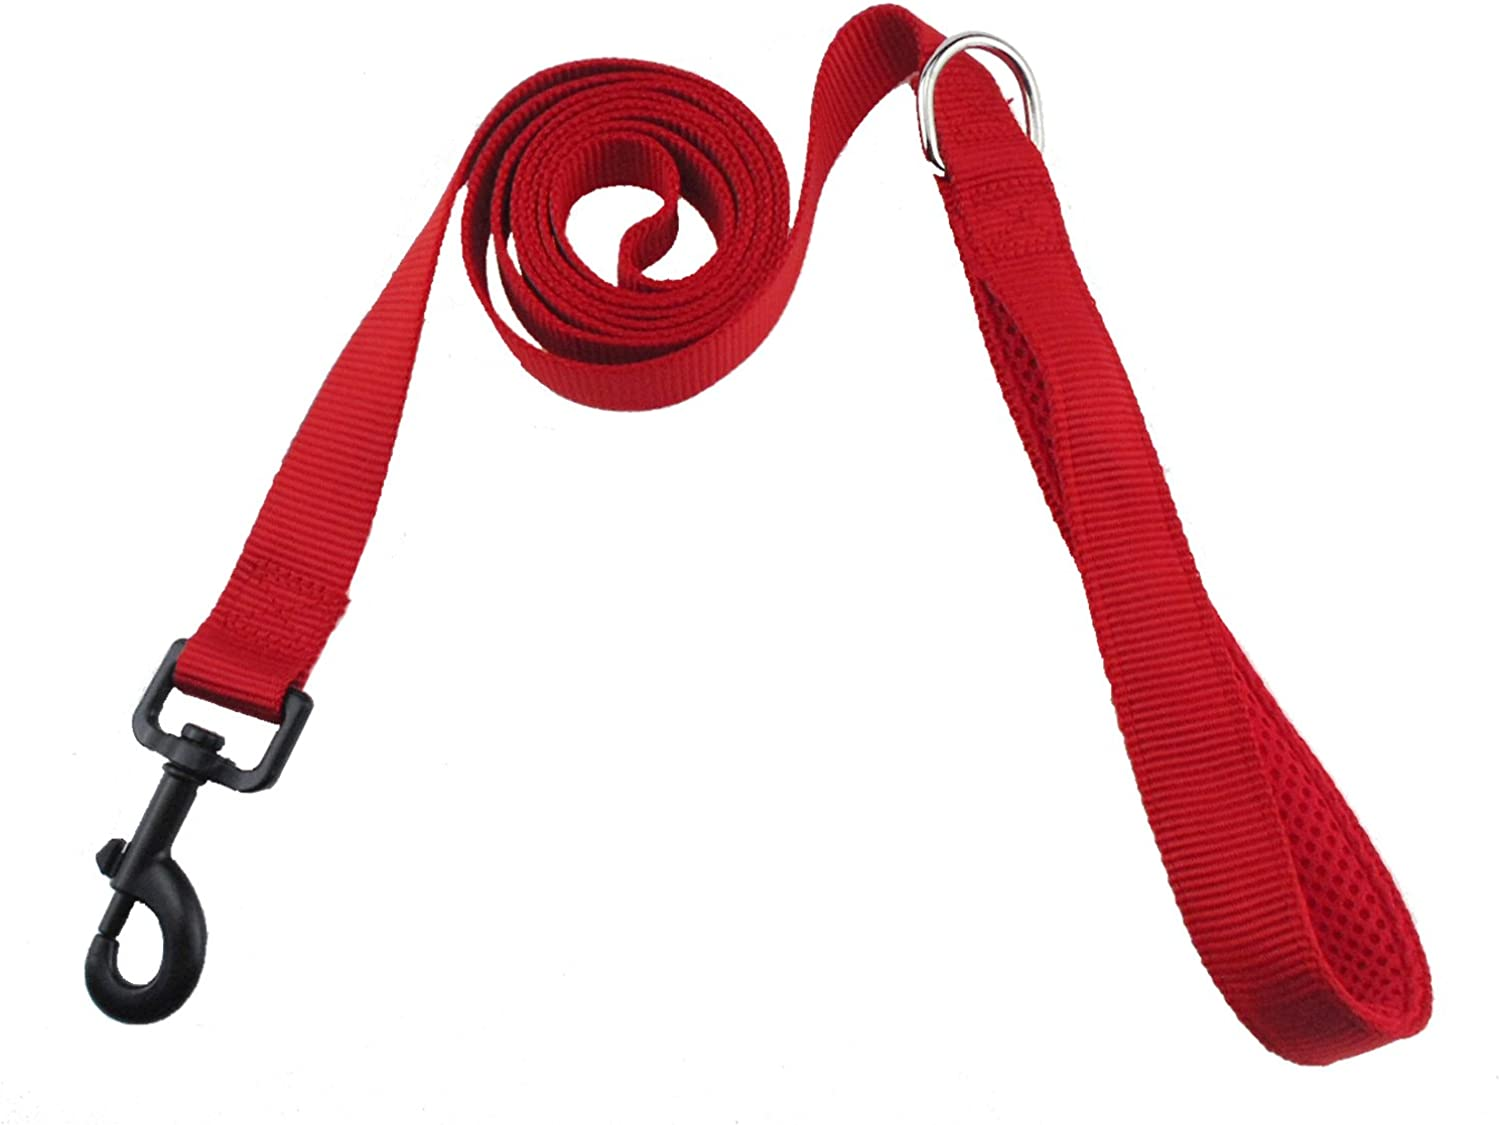 Dog Leash,Strong Durable Nylon Dog Leash,Dog Traction Rope,6ft Long Traction Rope, Training Leash, Great Control Safety Walking,Training,Play,Camping,Perfect Small, Medium Large Dogs